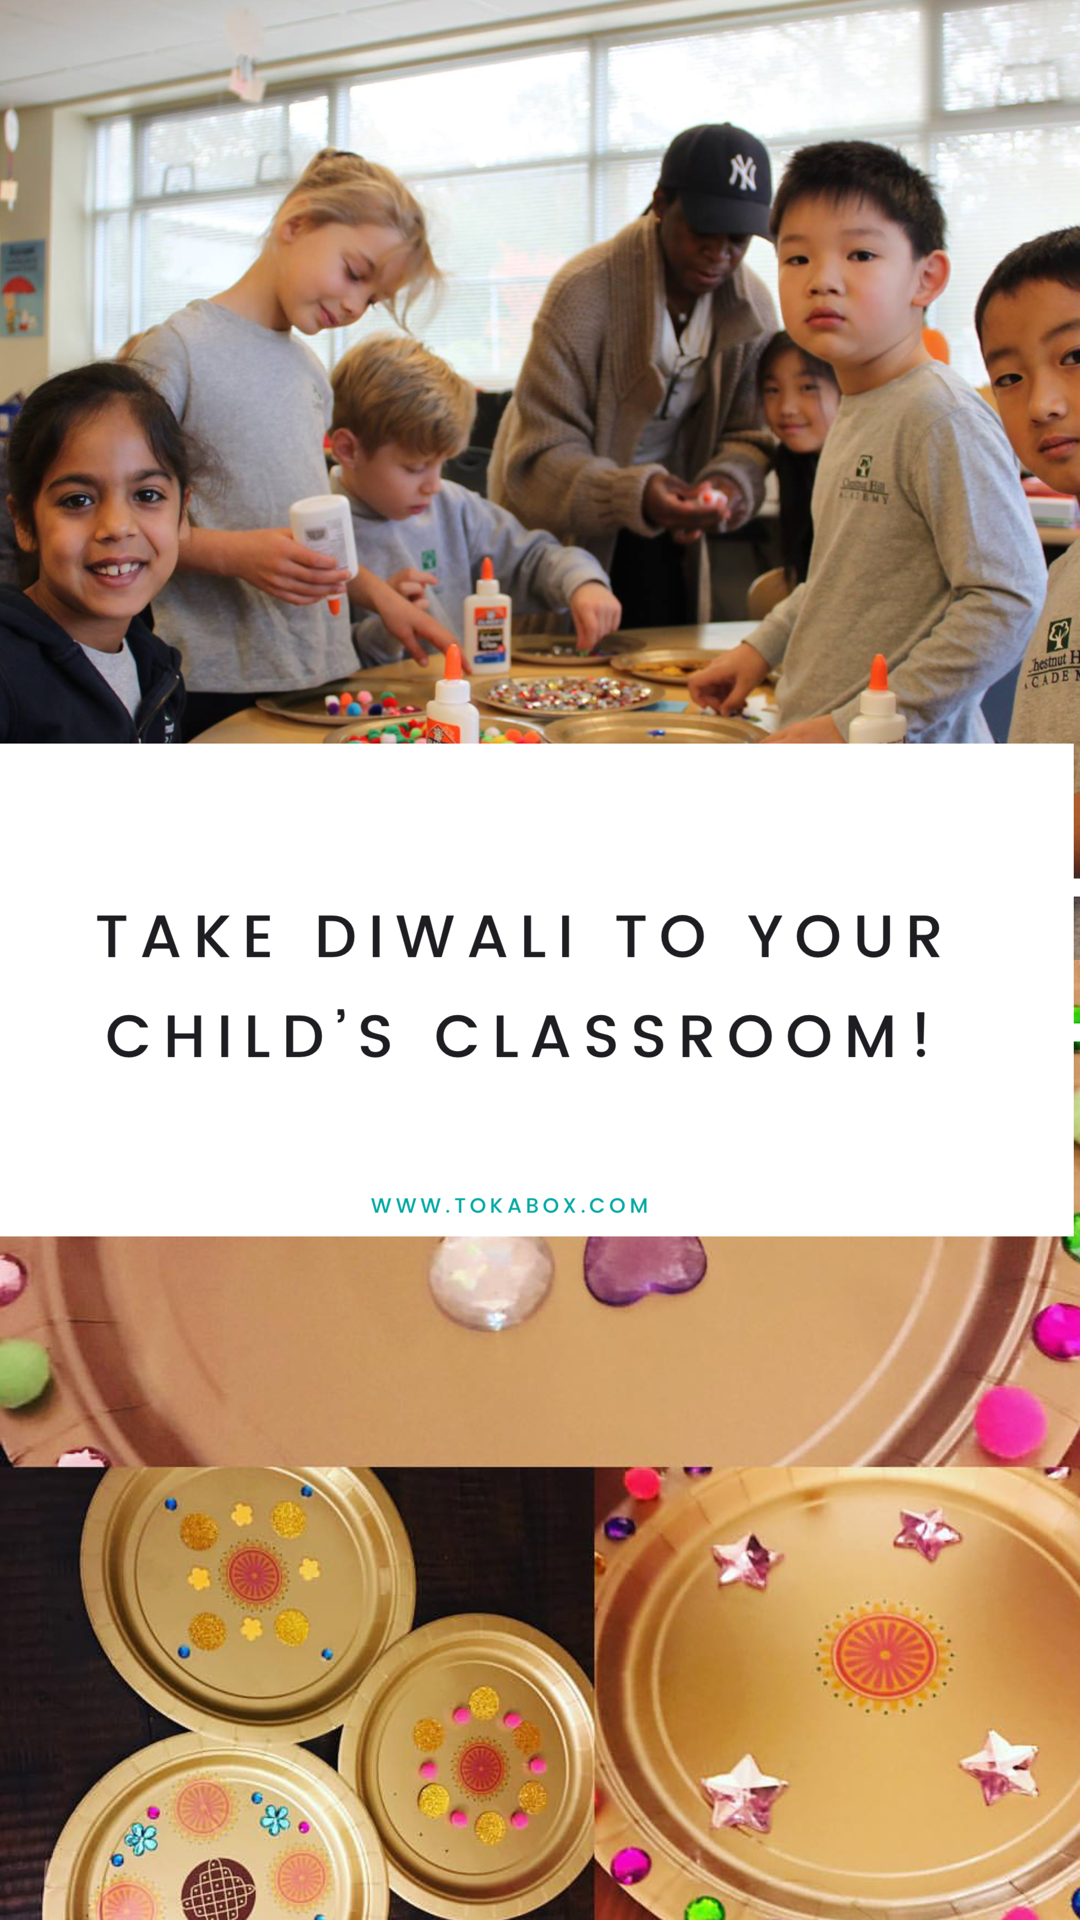 Celebrate Diwali In Your Child S Classroom Kids Classroom Classroom Your Child [ 1920 x 1080 Pixel ]